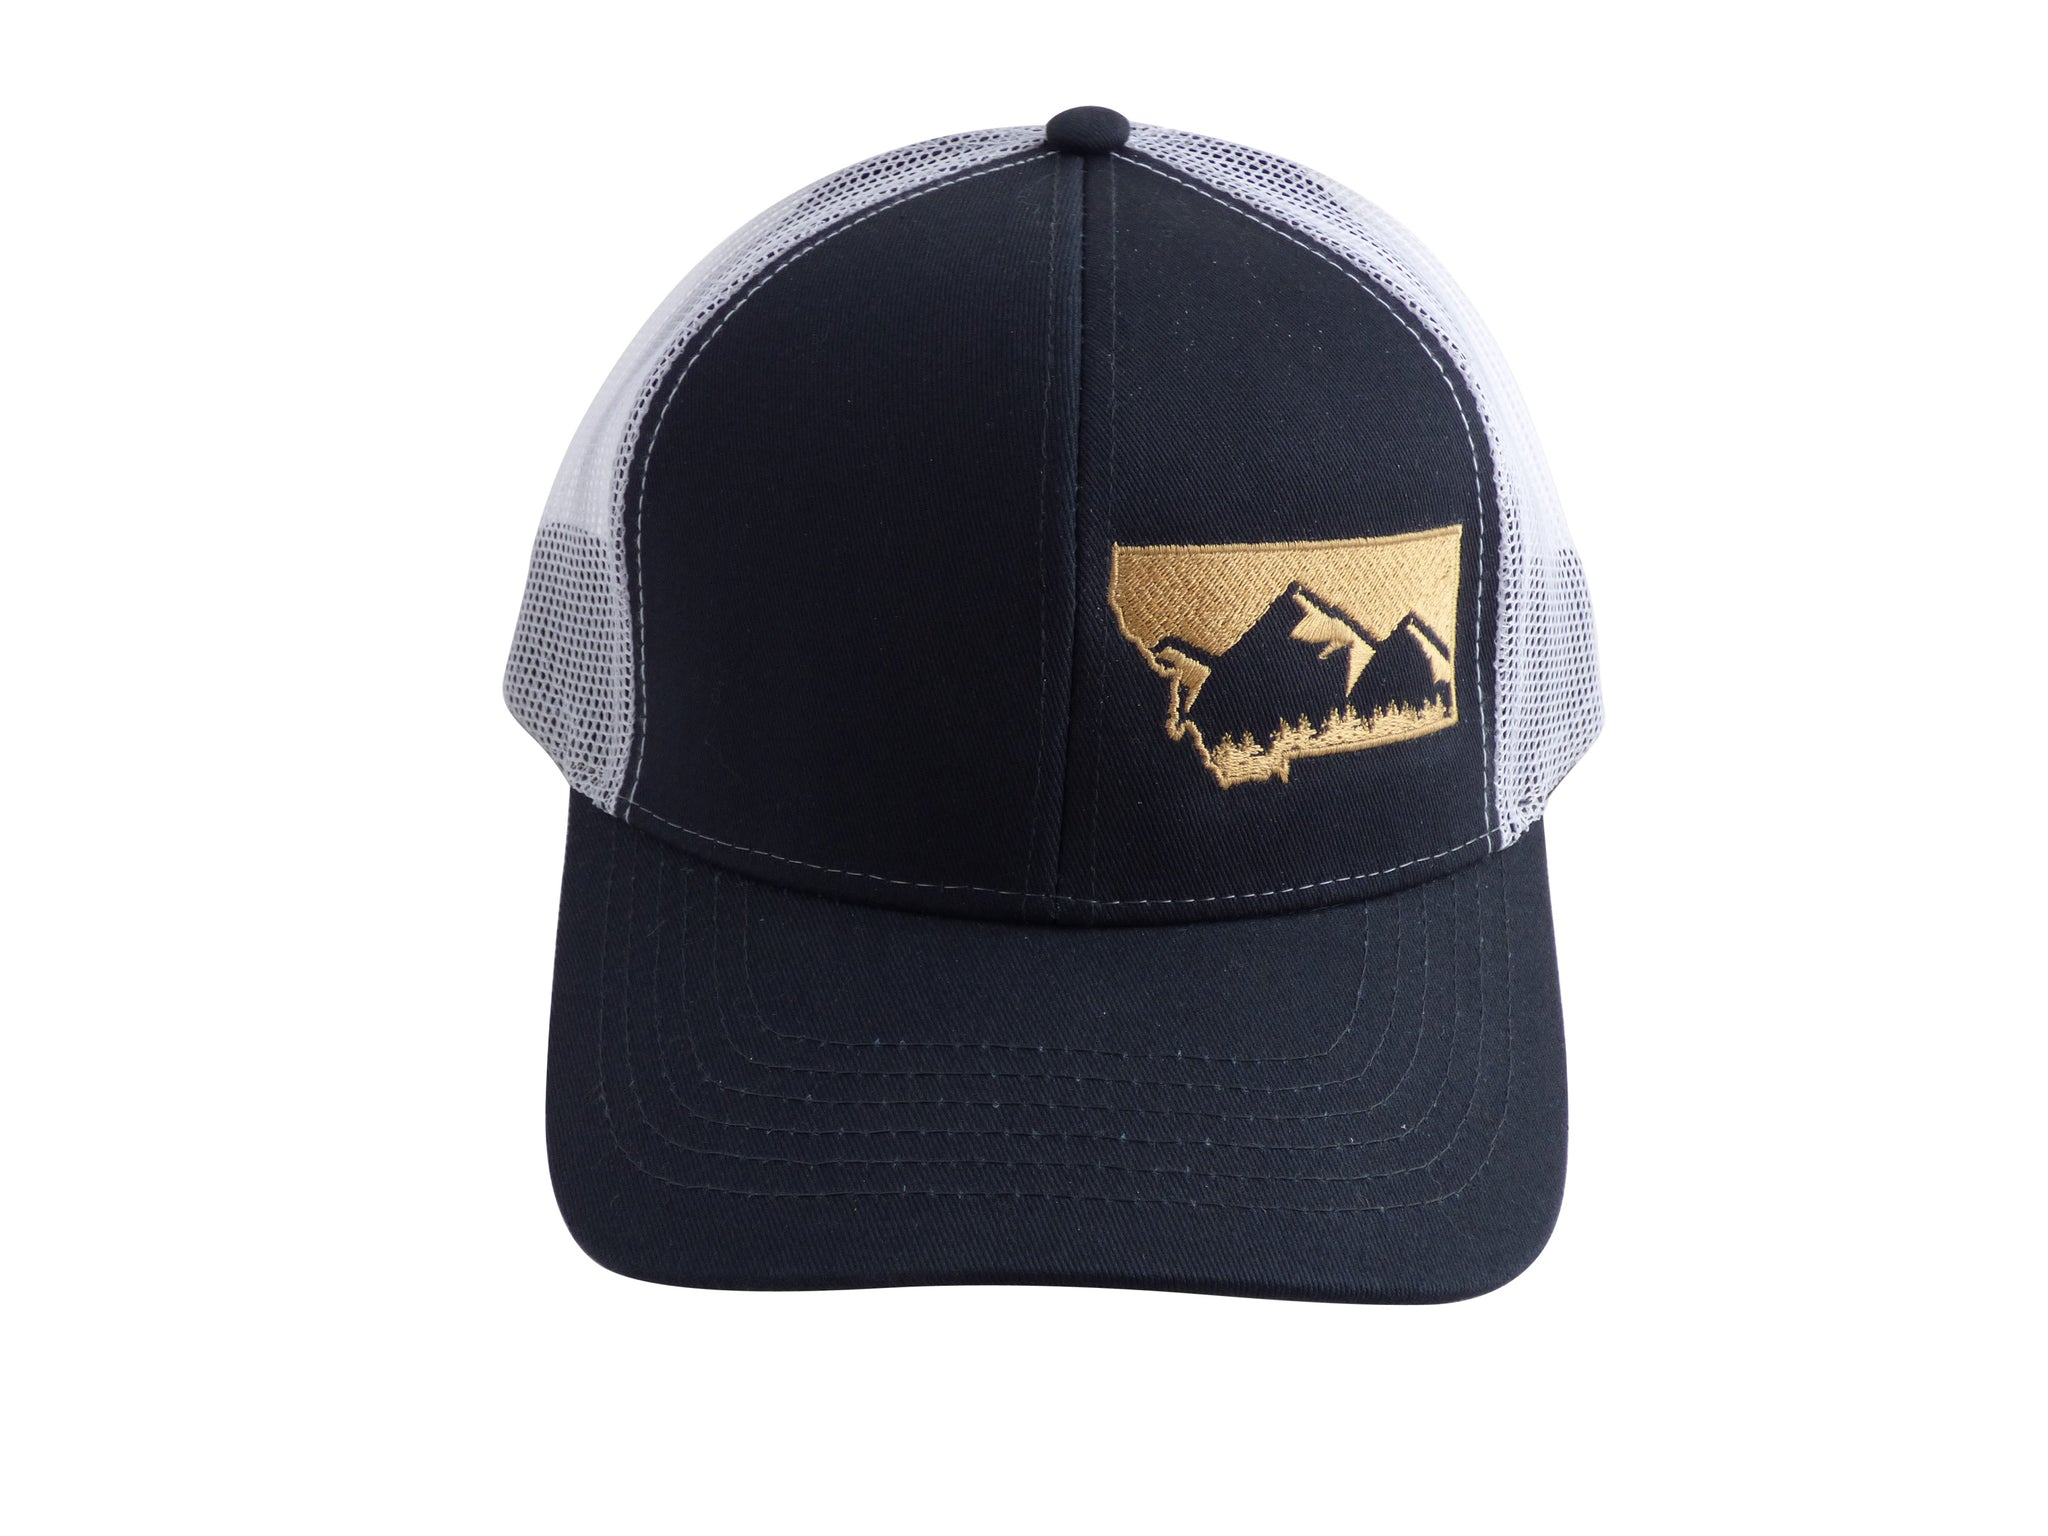 Navy with Gold Snapback Mountain Hat